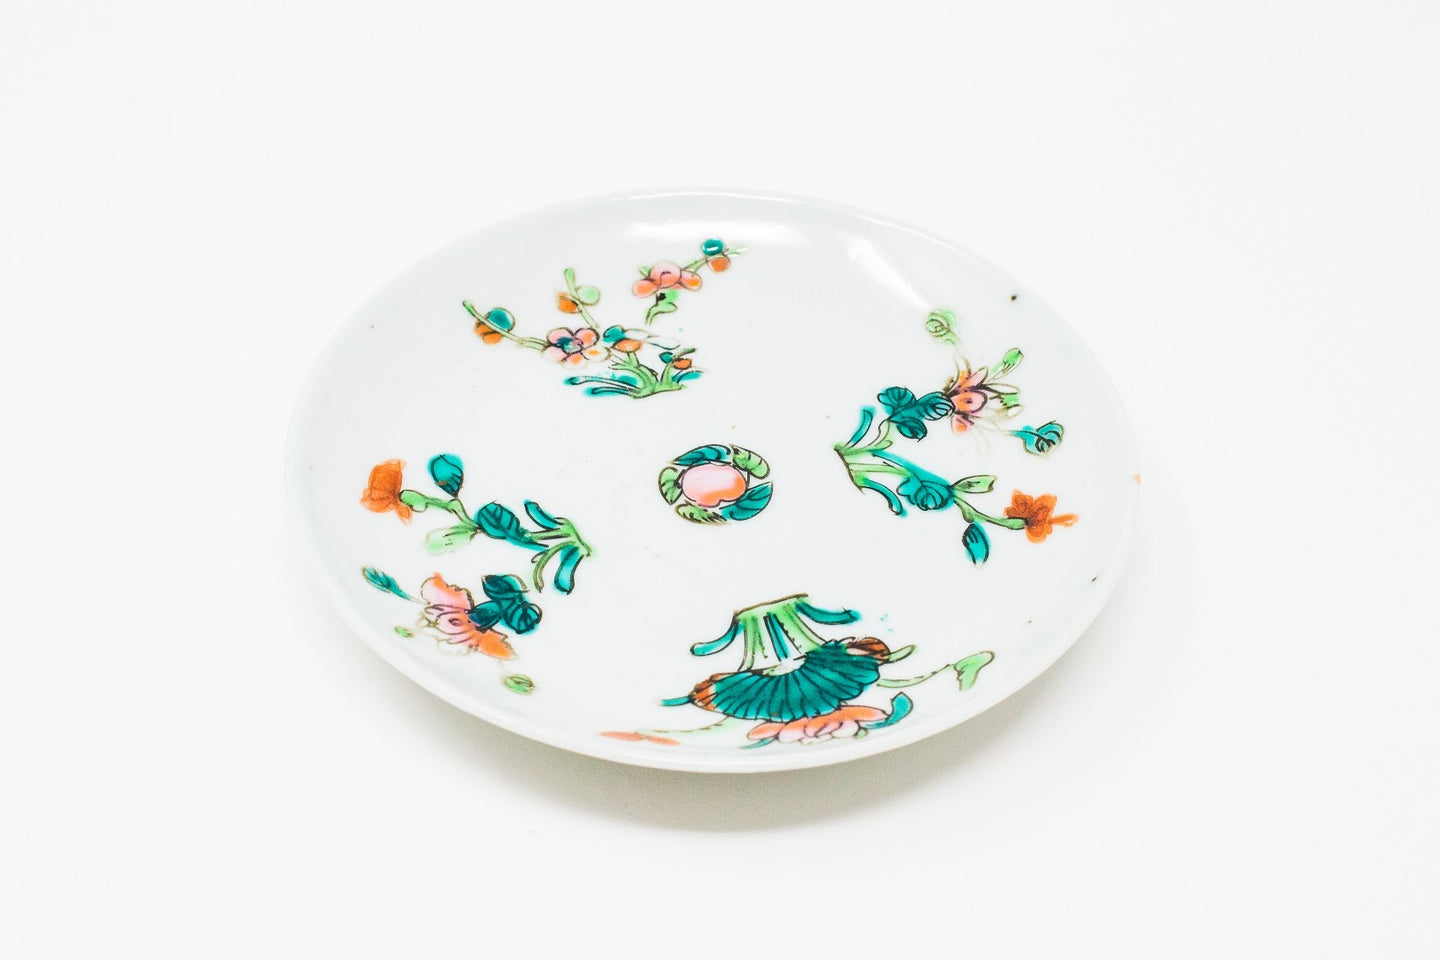 Late Qing / early RoC small plate / tea boat